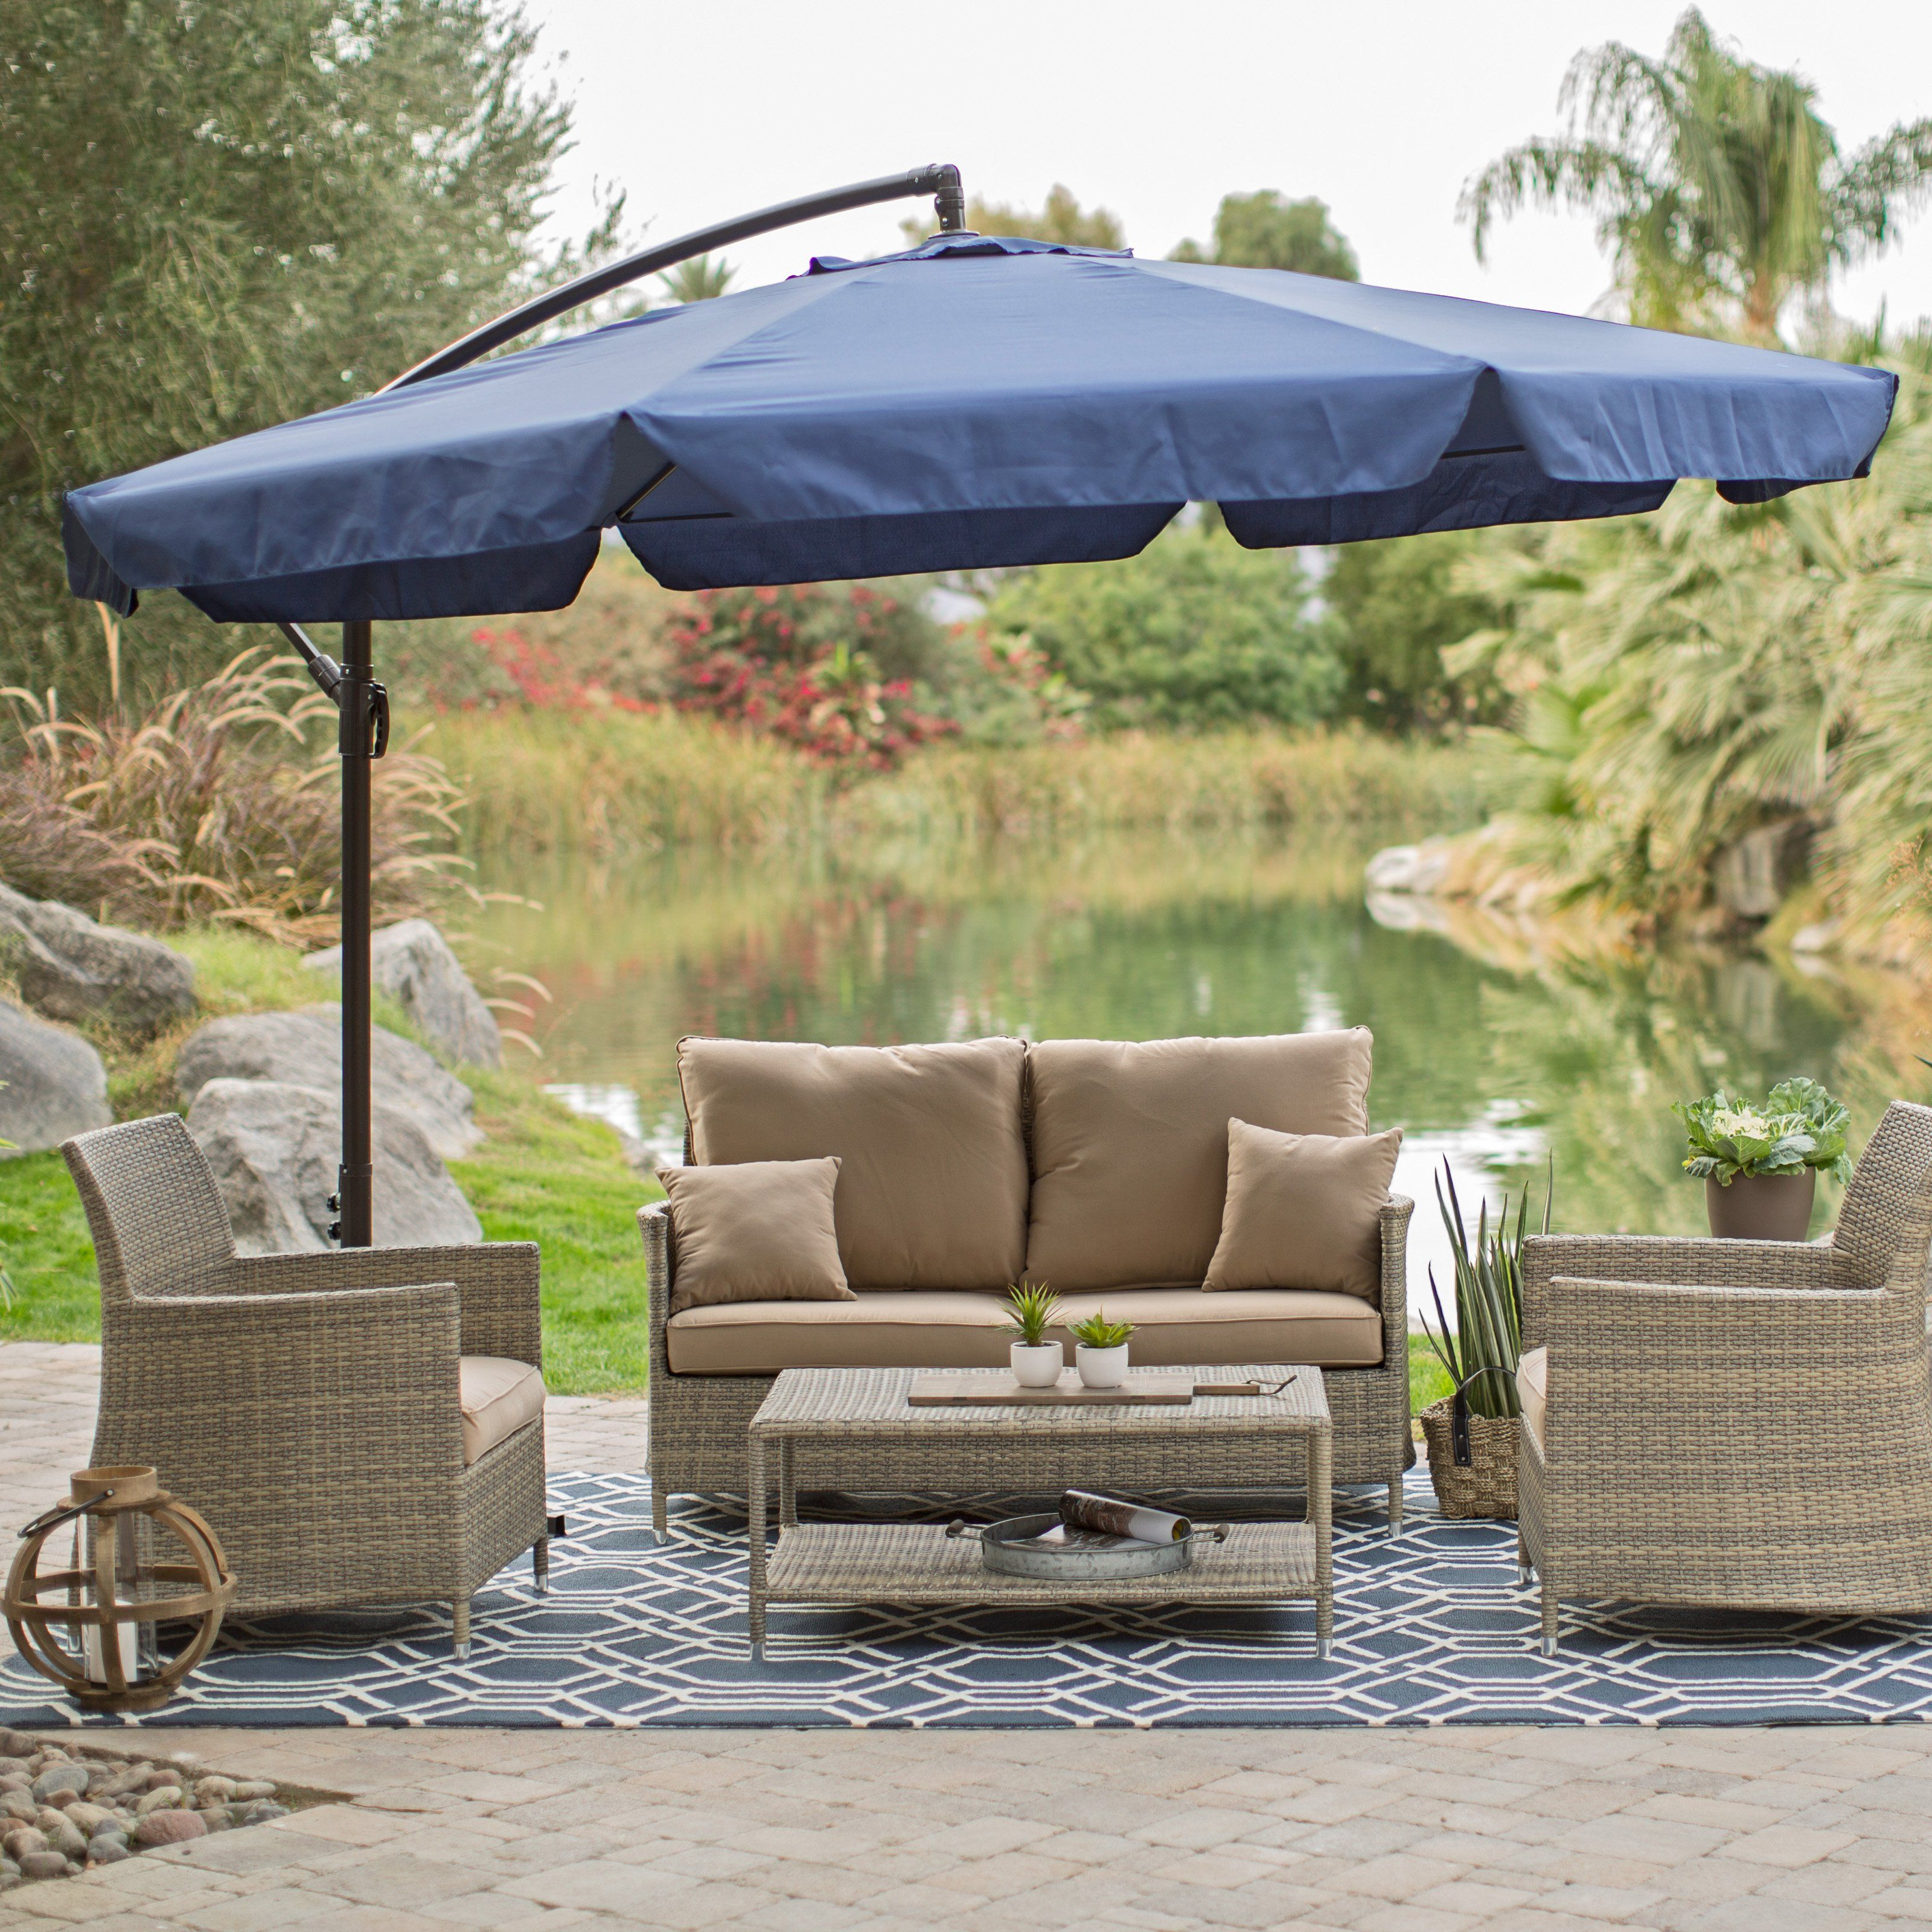 Coral Coast Offset Umbrella With Detachable Netting   Stay In The Shade  With The Coral Coast Gazebo Umbrella With Detachable Netting. This Large  Offset ...